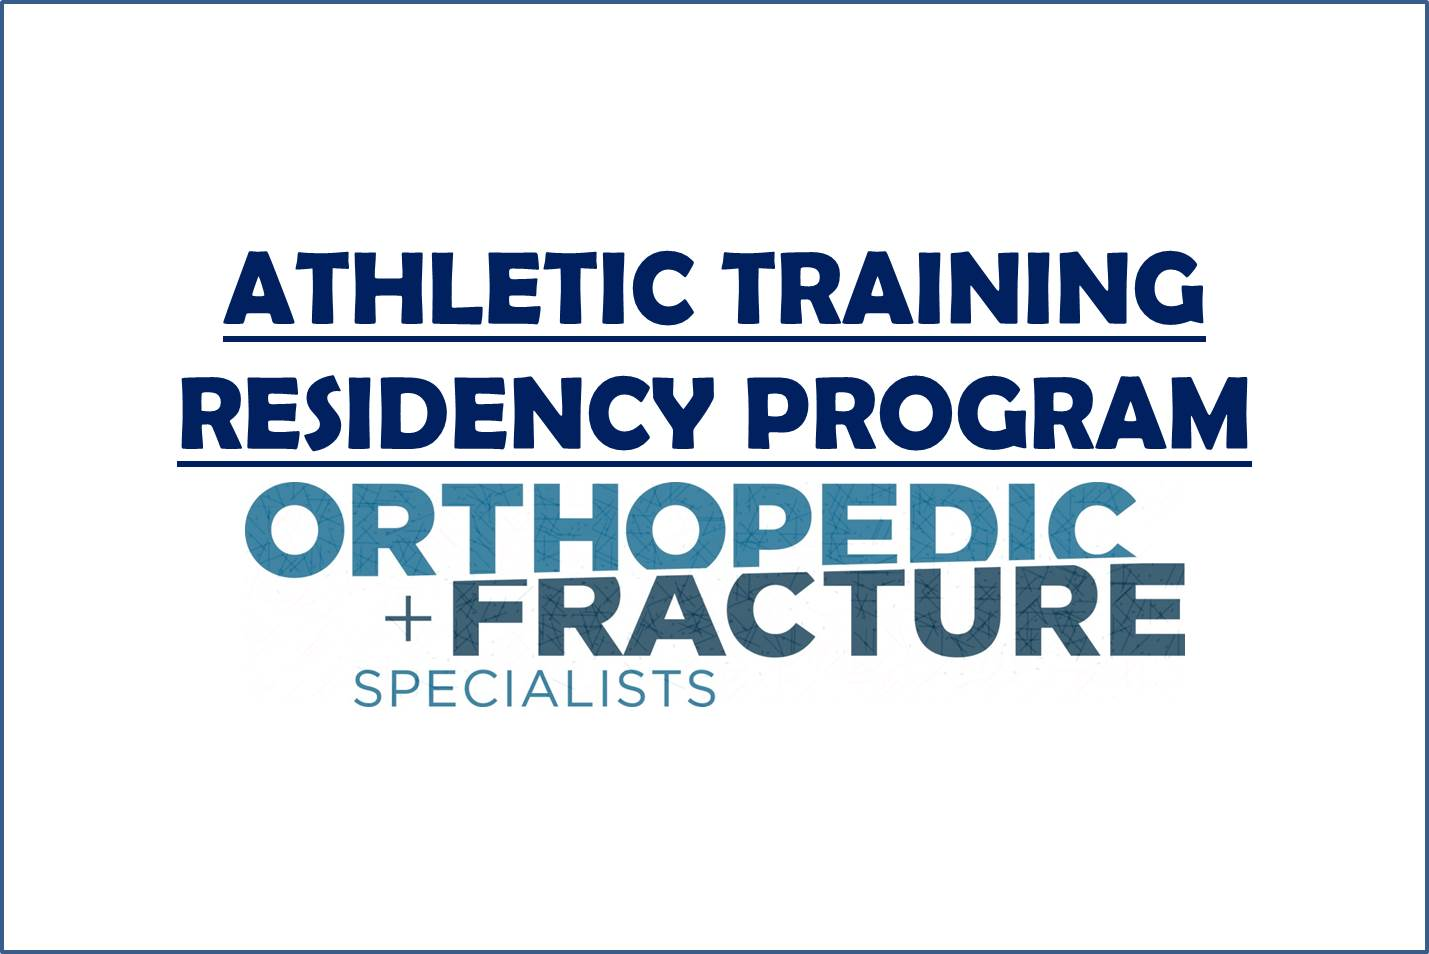 Athletic training residency program orthopedic fracture athletic training residency program orthopedic fracture specialists 1betcityfo Choice Image